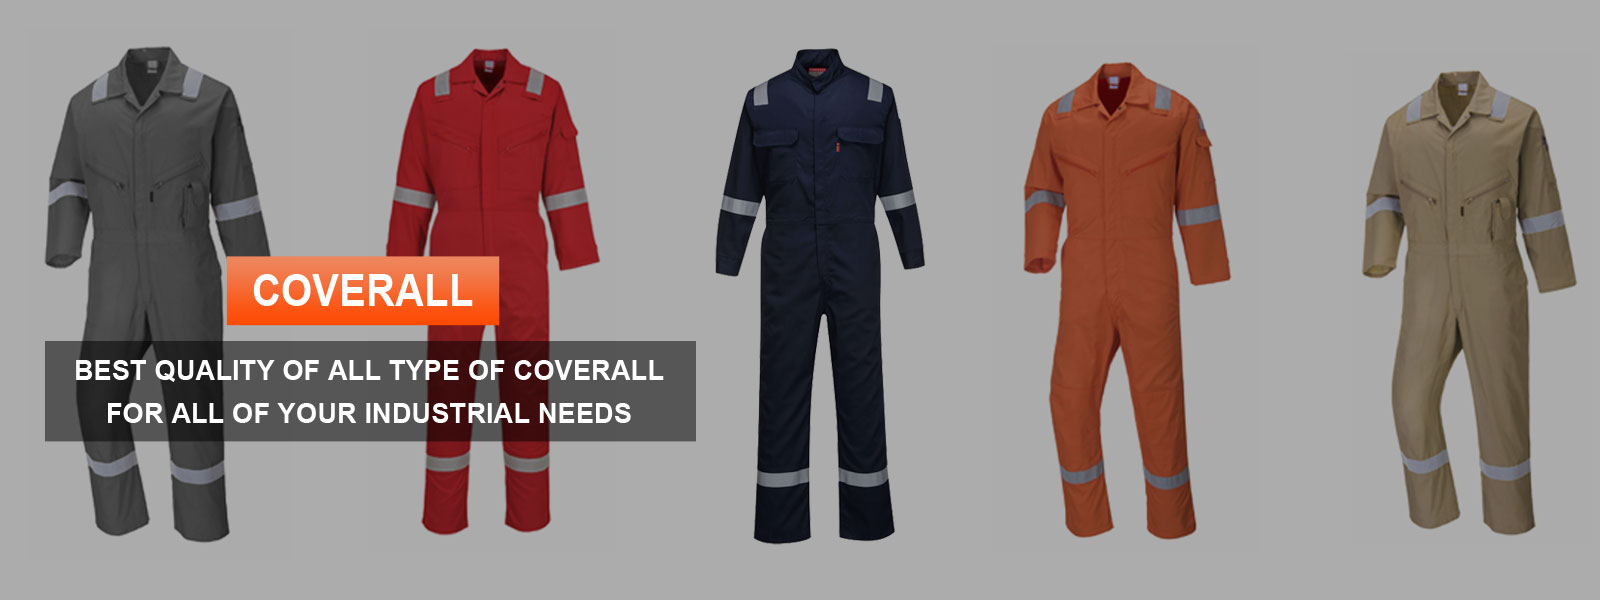 Coverall Manufacturers in Antigua